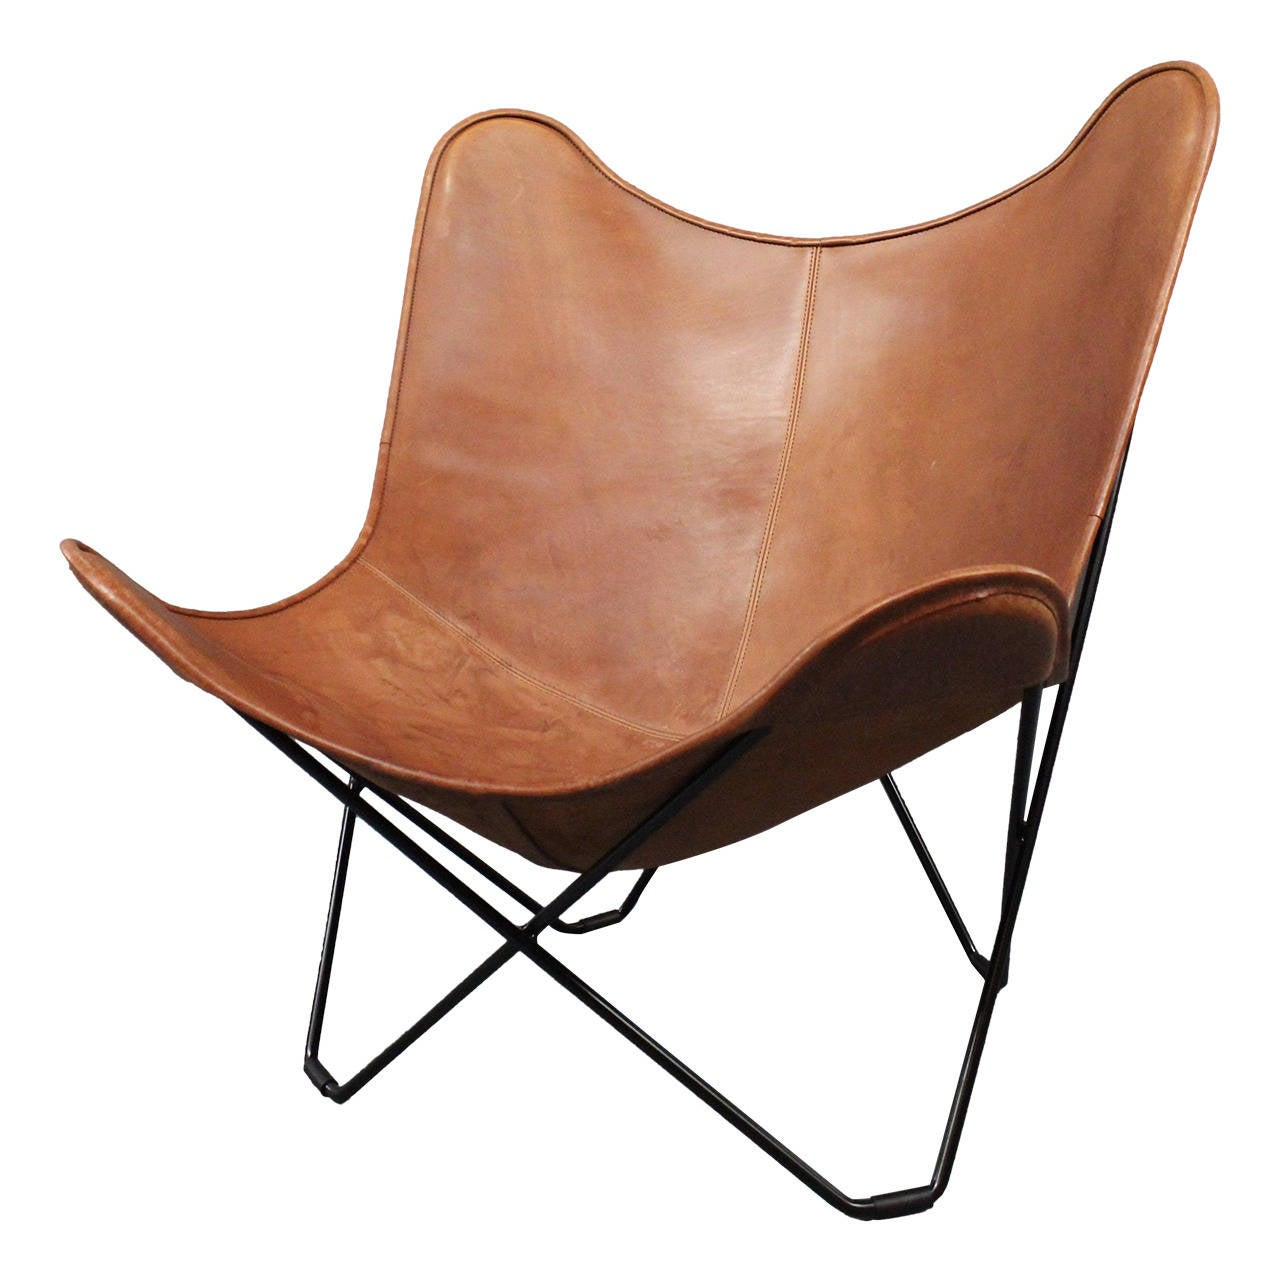 leather butterfly chair designed by jorge ferrari hardoy 1938 at 1stdibs. Black Bedroom Furniture Sets. Home Design Ideas